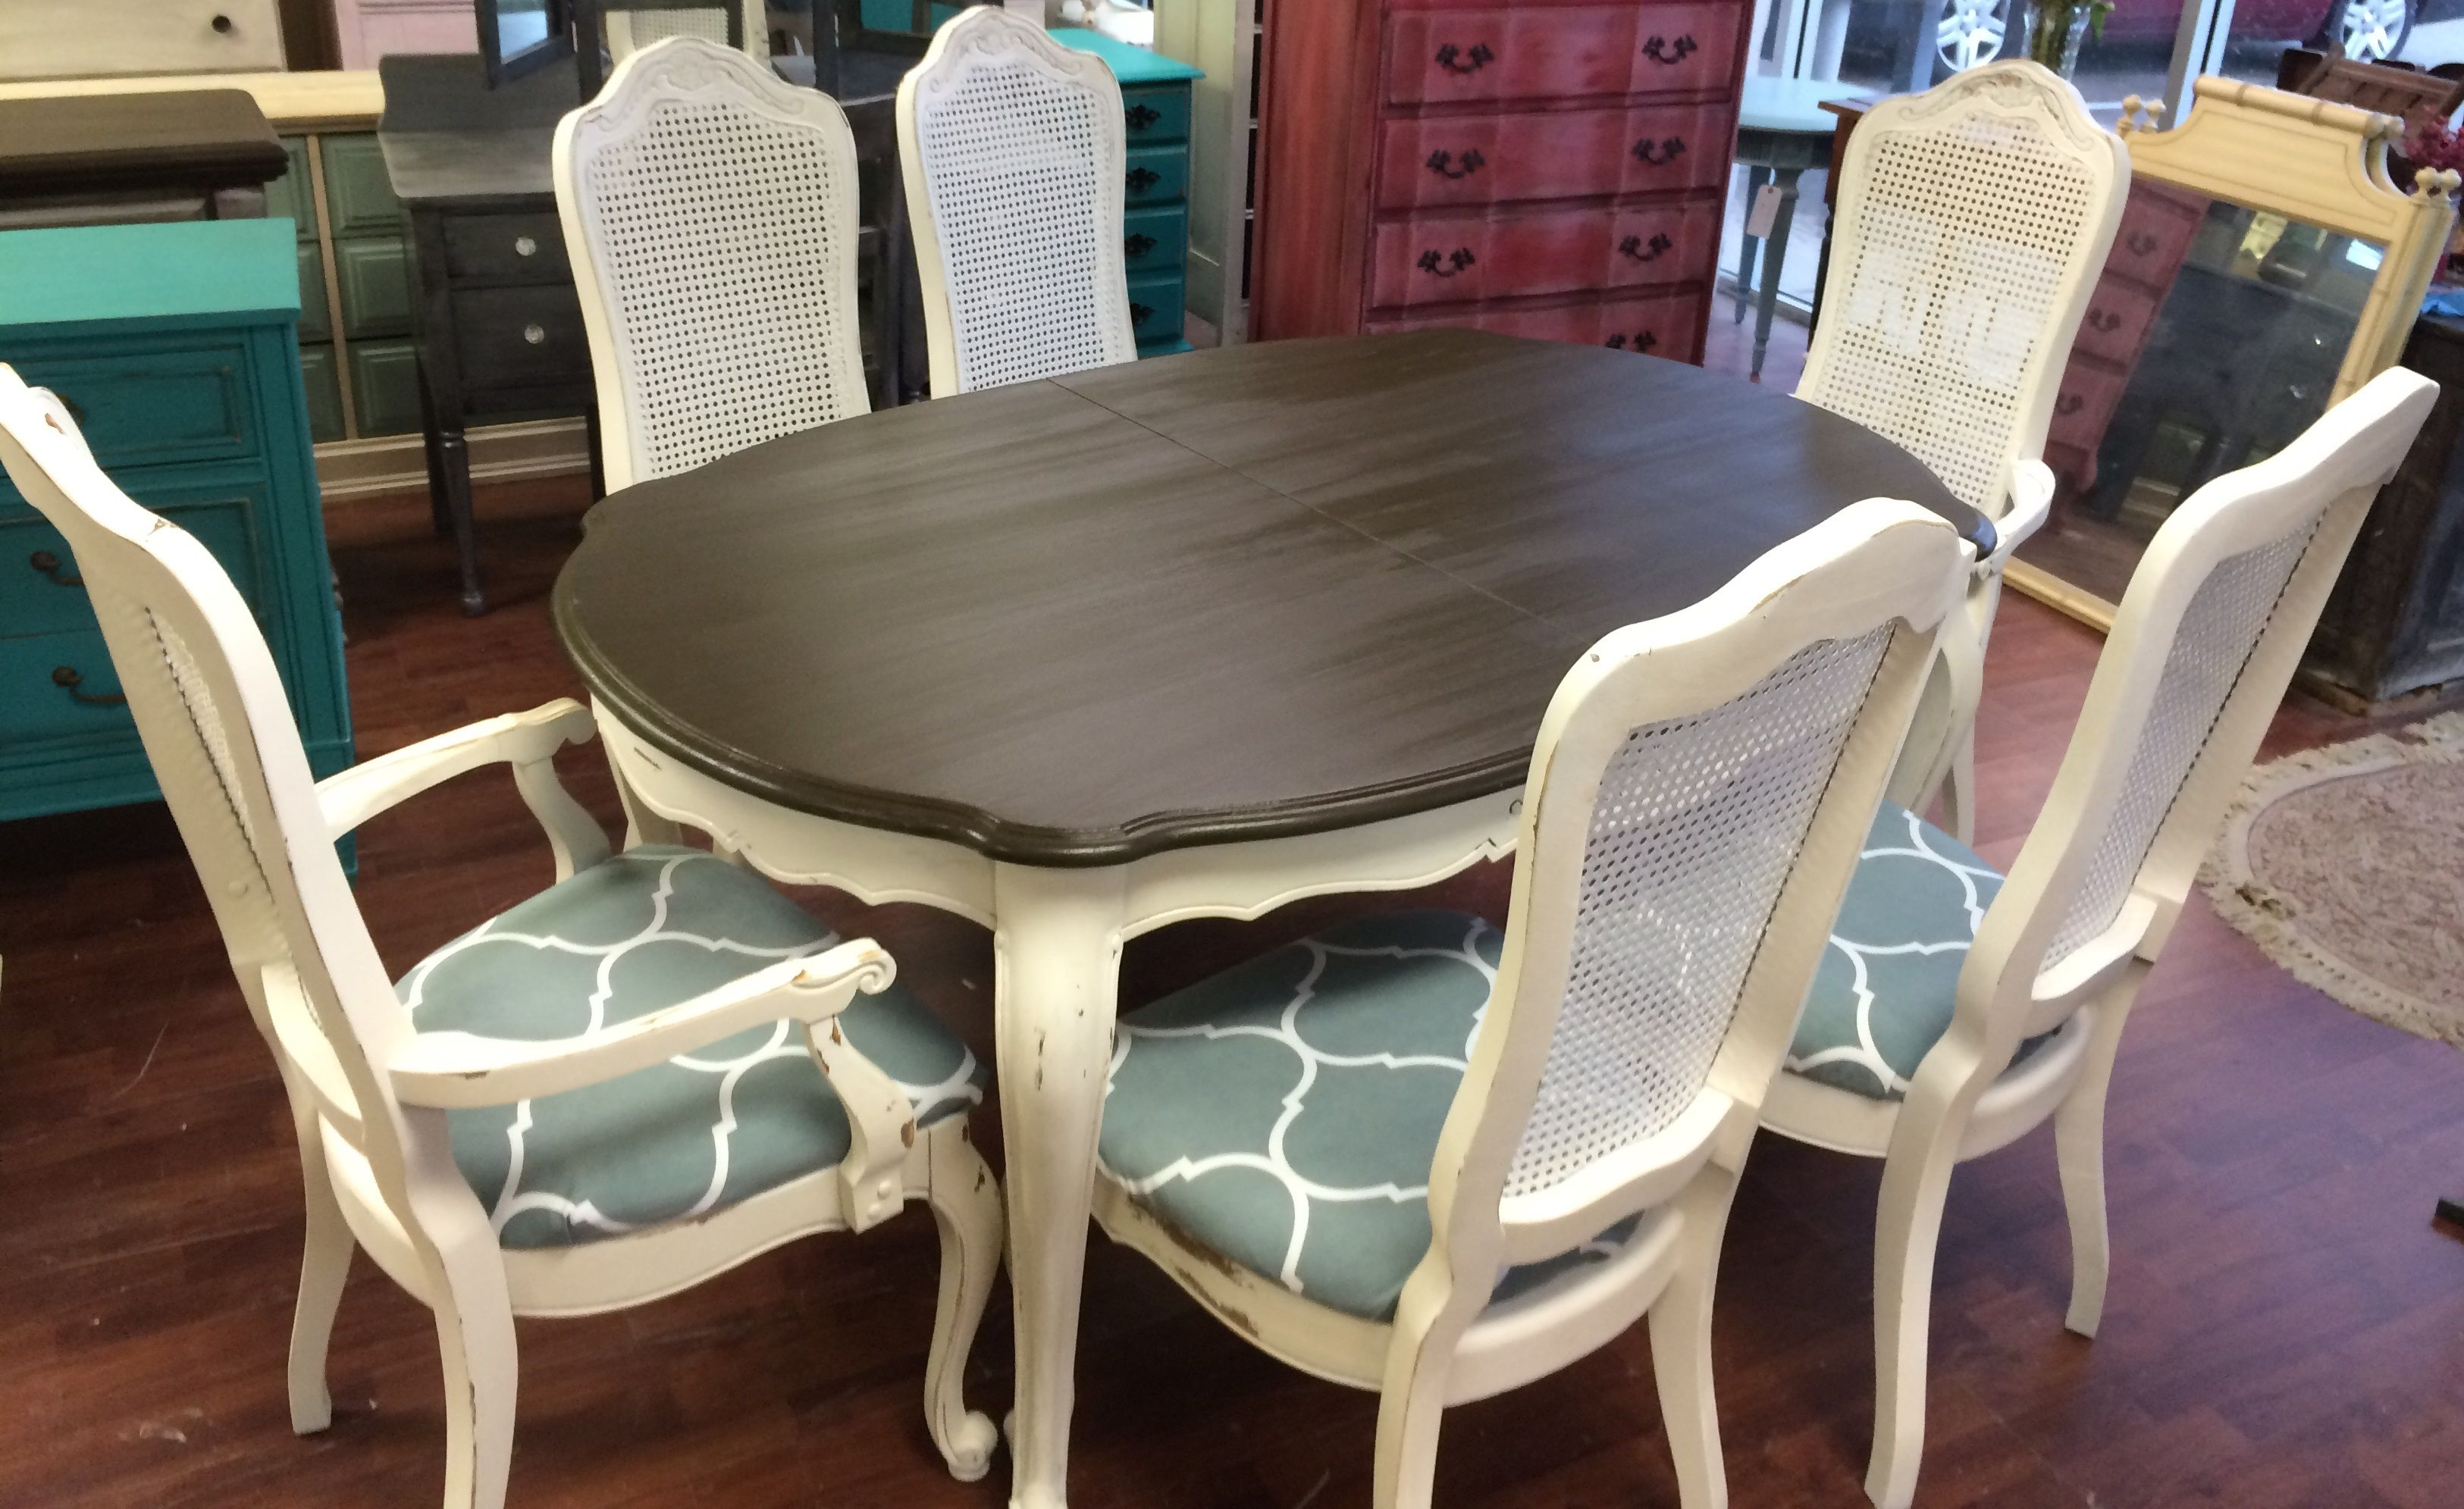 Here Is Another Super Cute French Dining Room Set It Has 2 Captain S Chairs And 4 Regular Chairs Dining Room French Shabby Chic Dining Kitchen Table Settings